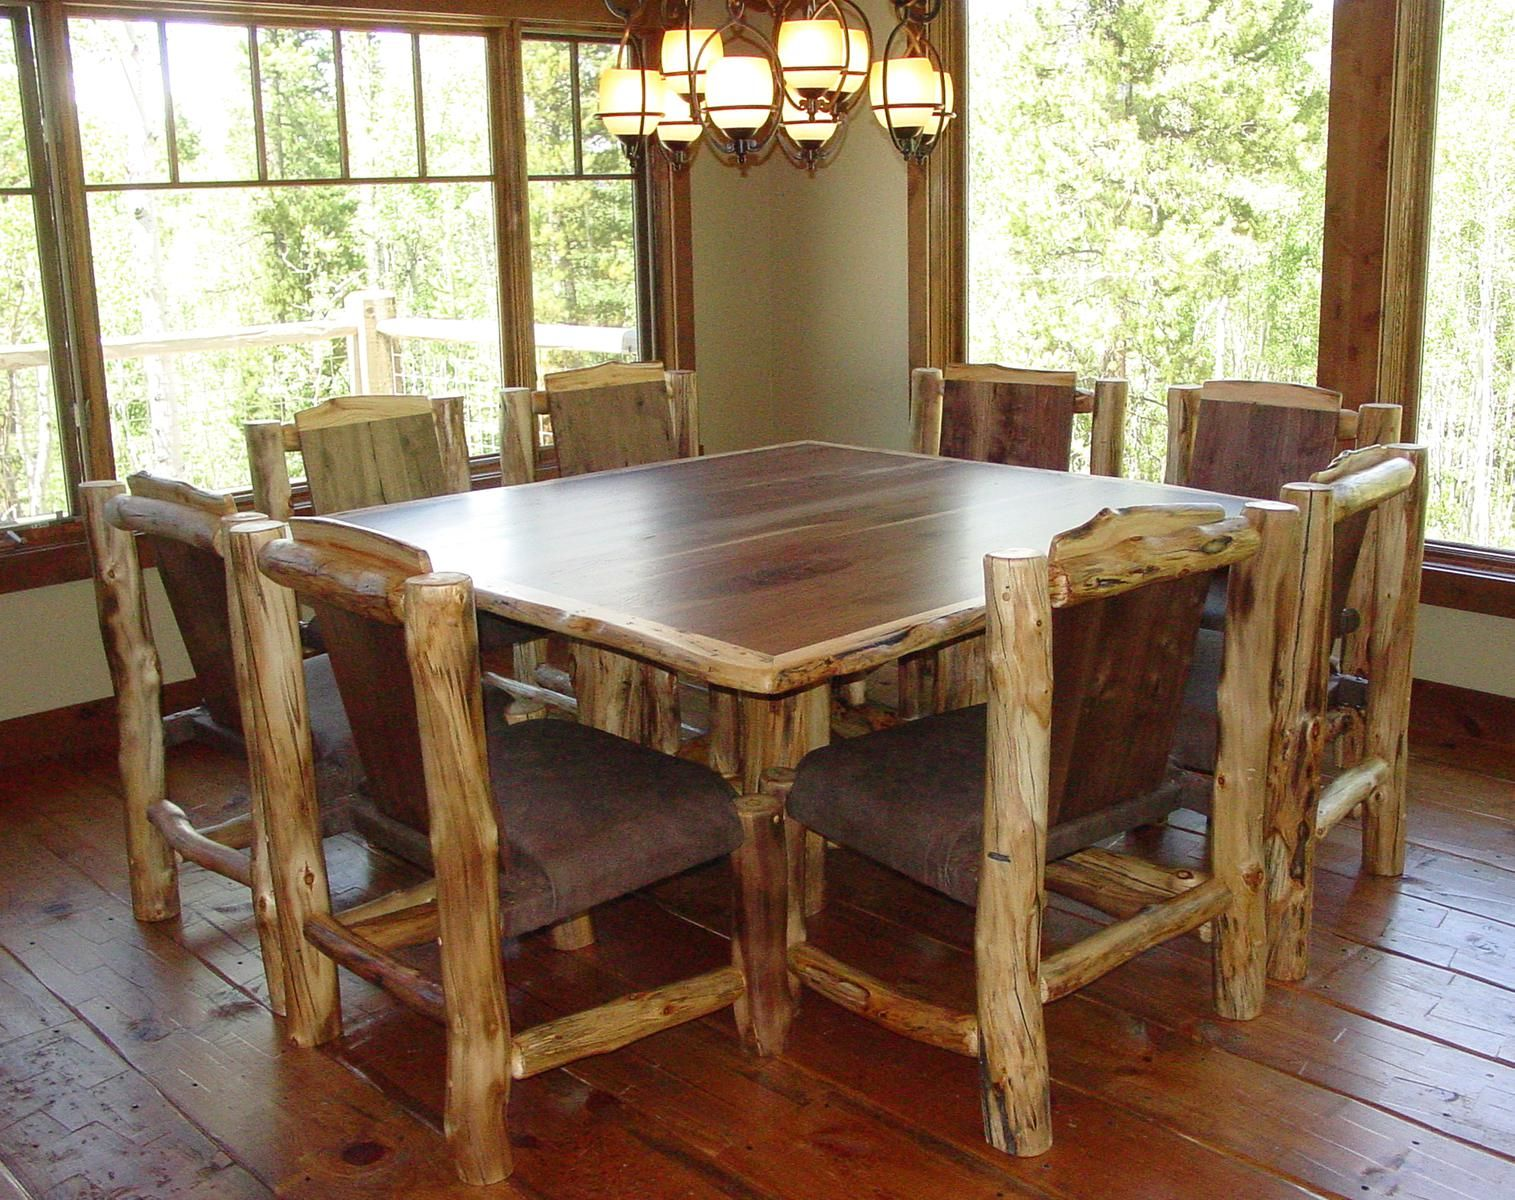 Custom Aspen And Solid Walnut Dining Set With 8 Chairs By Naked Aspen Designs